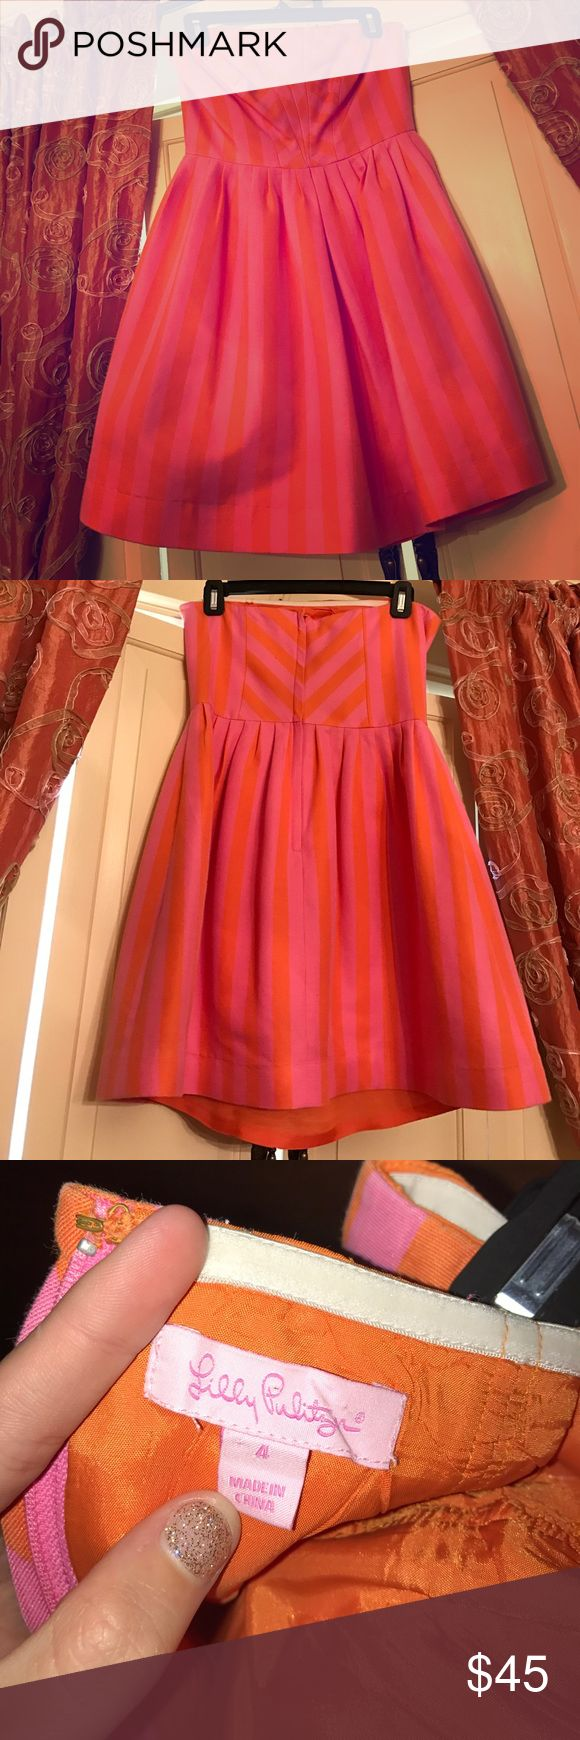 Lilly Pulitzer Dress This fun Pink and Orange strapless Lilly dress is perfect for any occasion. It can be dressed up, as well as down. It has only been worn twice and is in great condition! Lilly Pulitzer Dresses Strapless